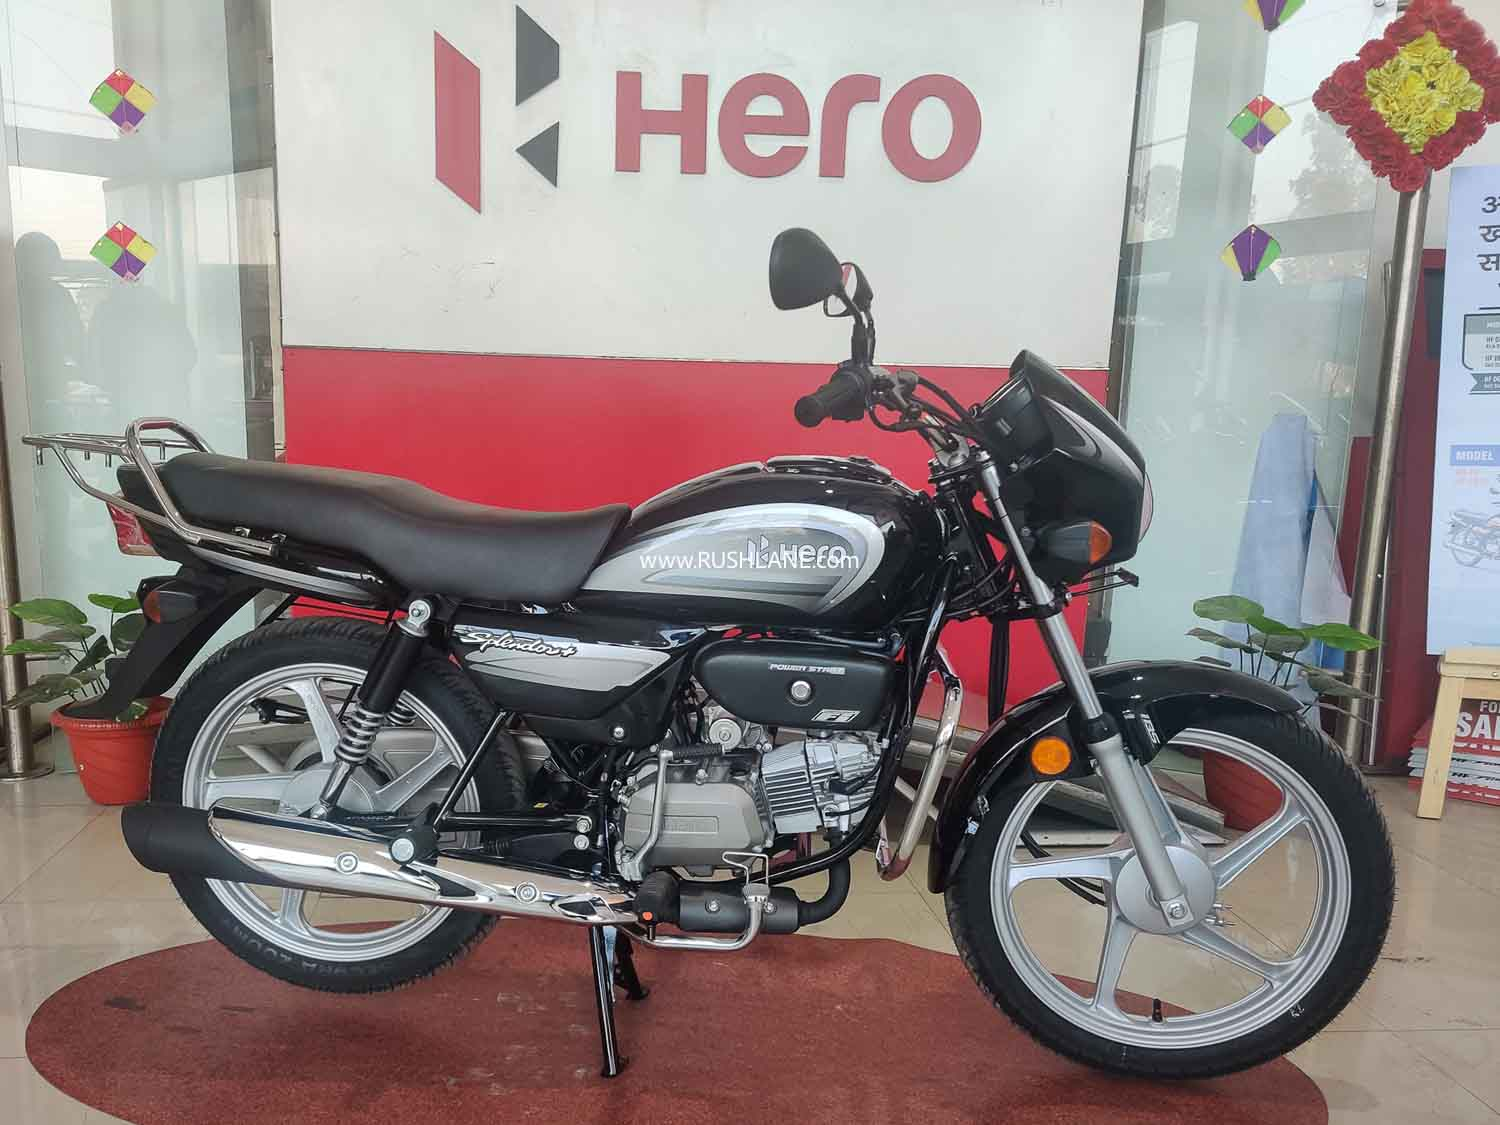 Hero Splendor BS6 sales